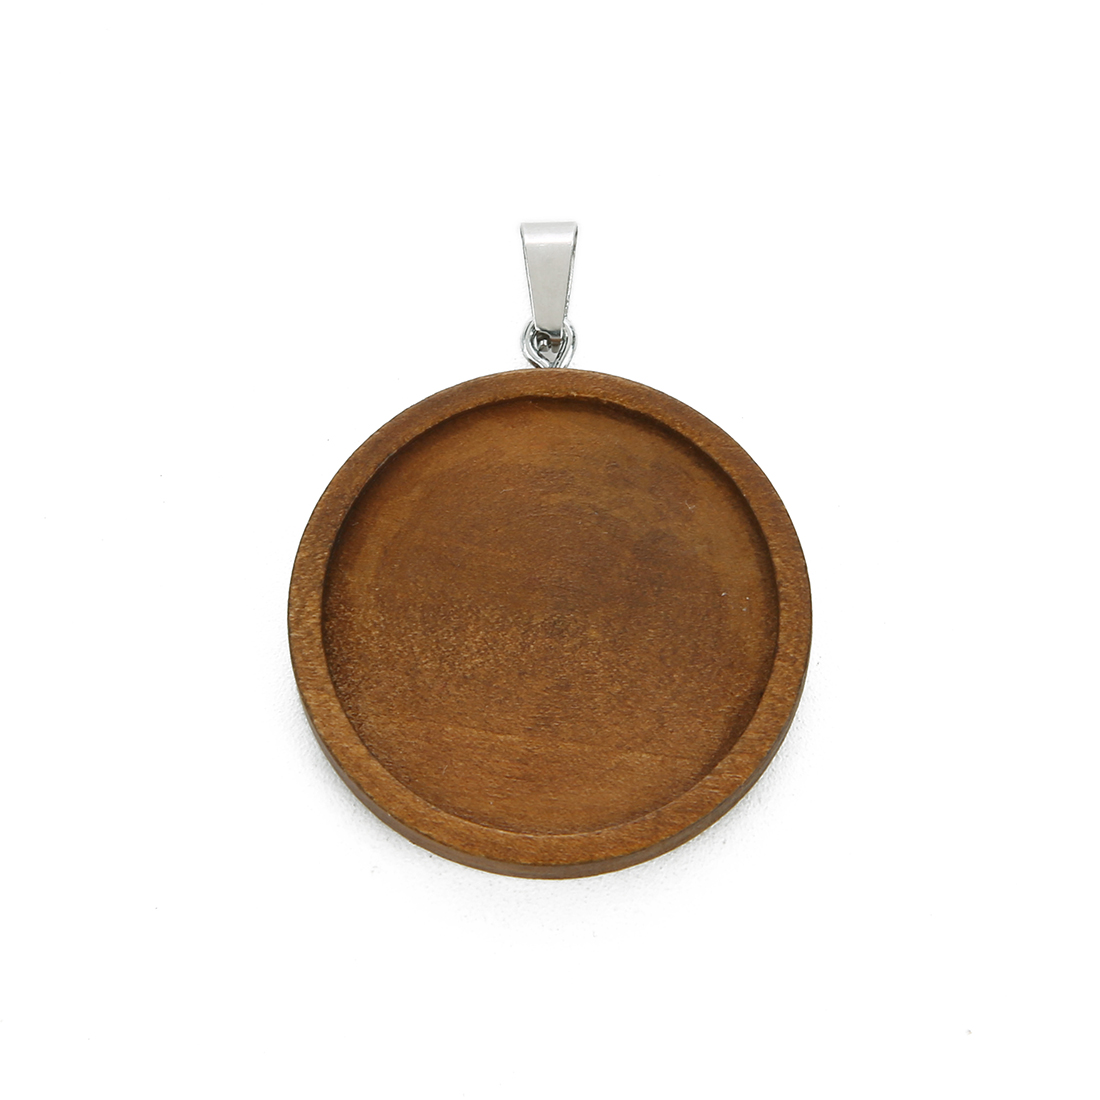 10 pcs Wooden Pendant Trays Round Cabochon Bases for Crafting DIY Jewelry Gift Making